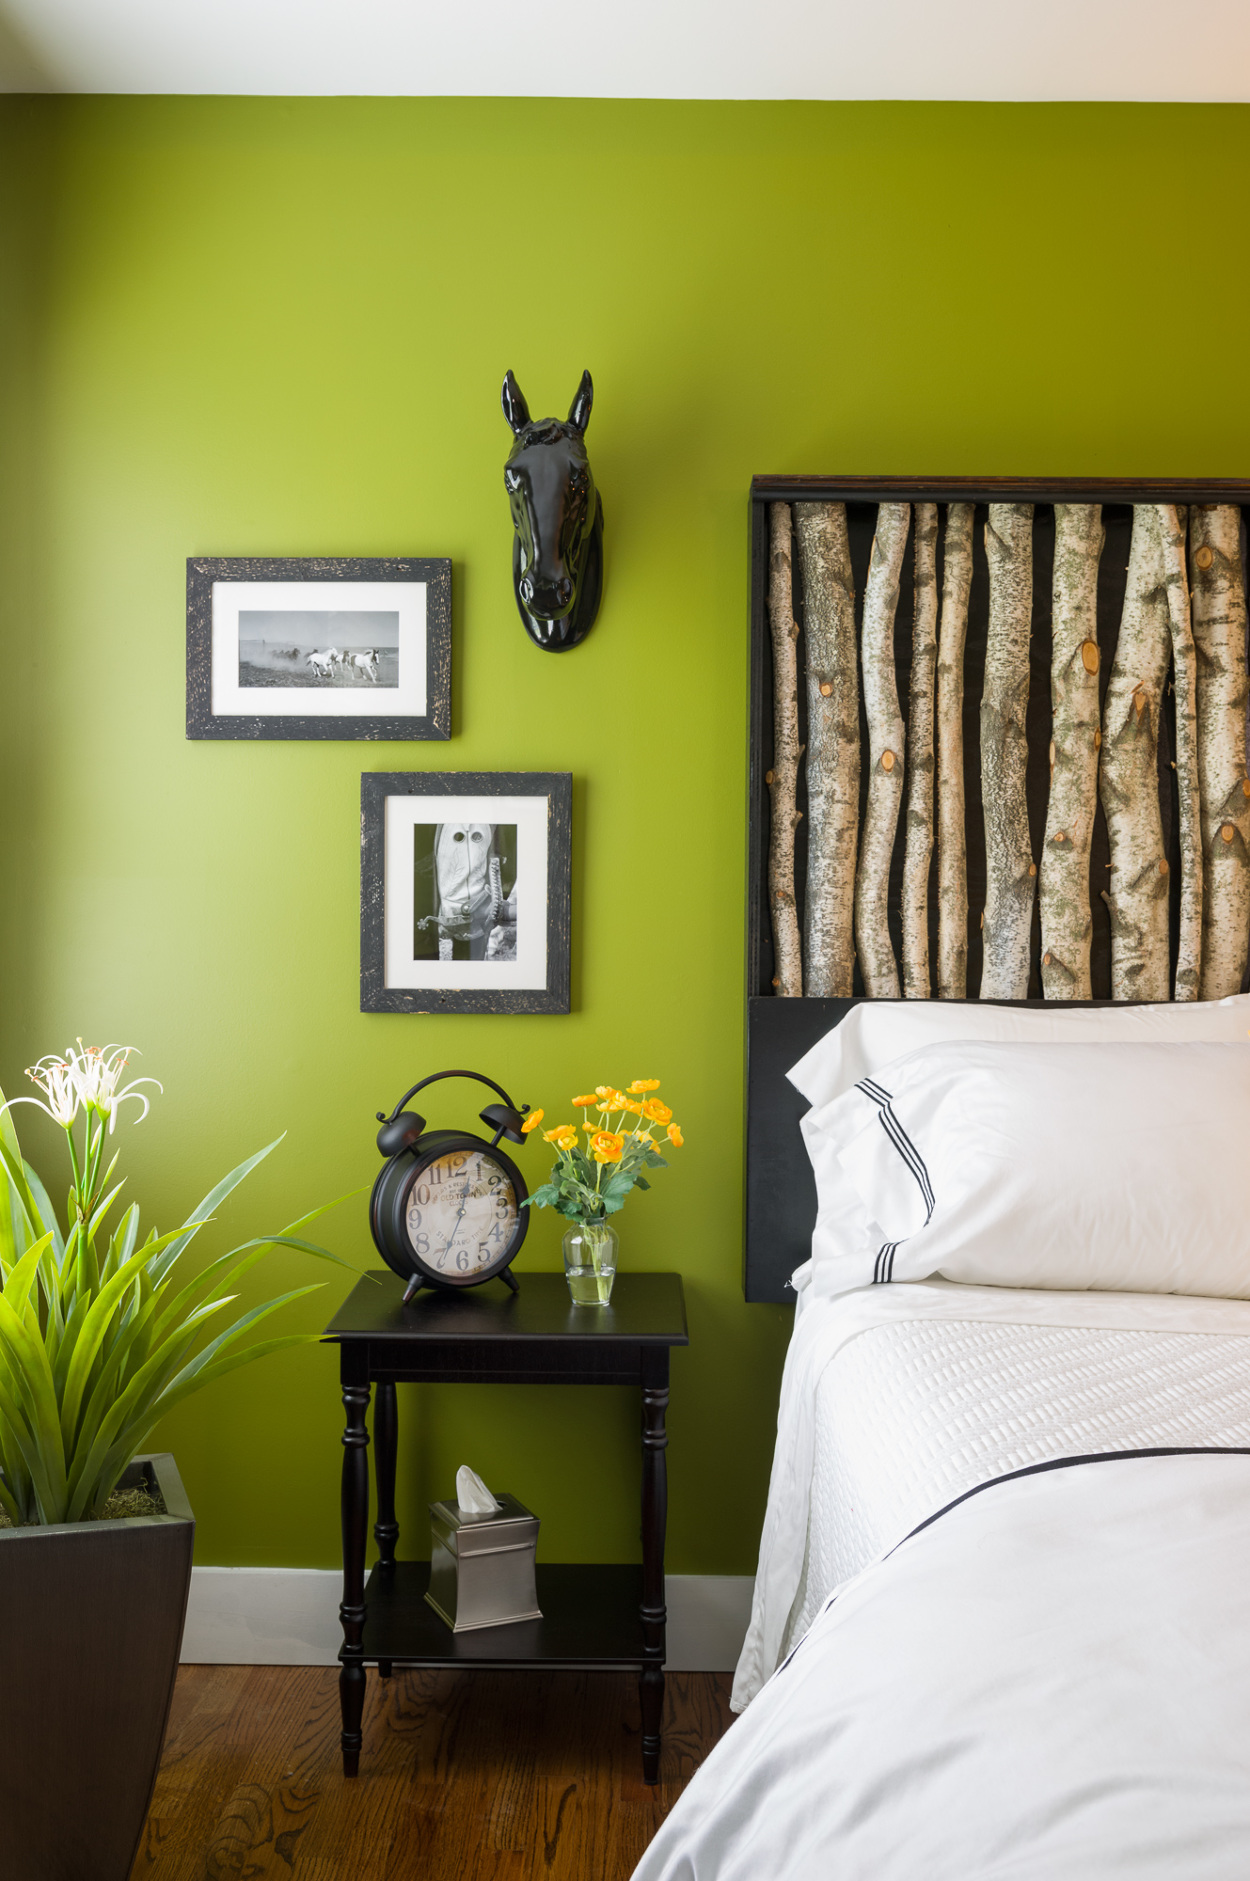 After  - The framed photographs, sourced from Arizona, are a nod to our client's love of horses and riding.